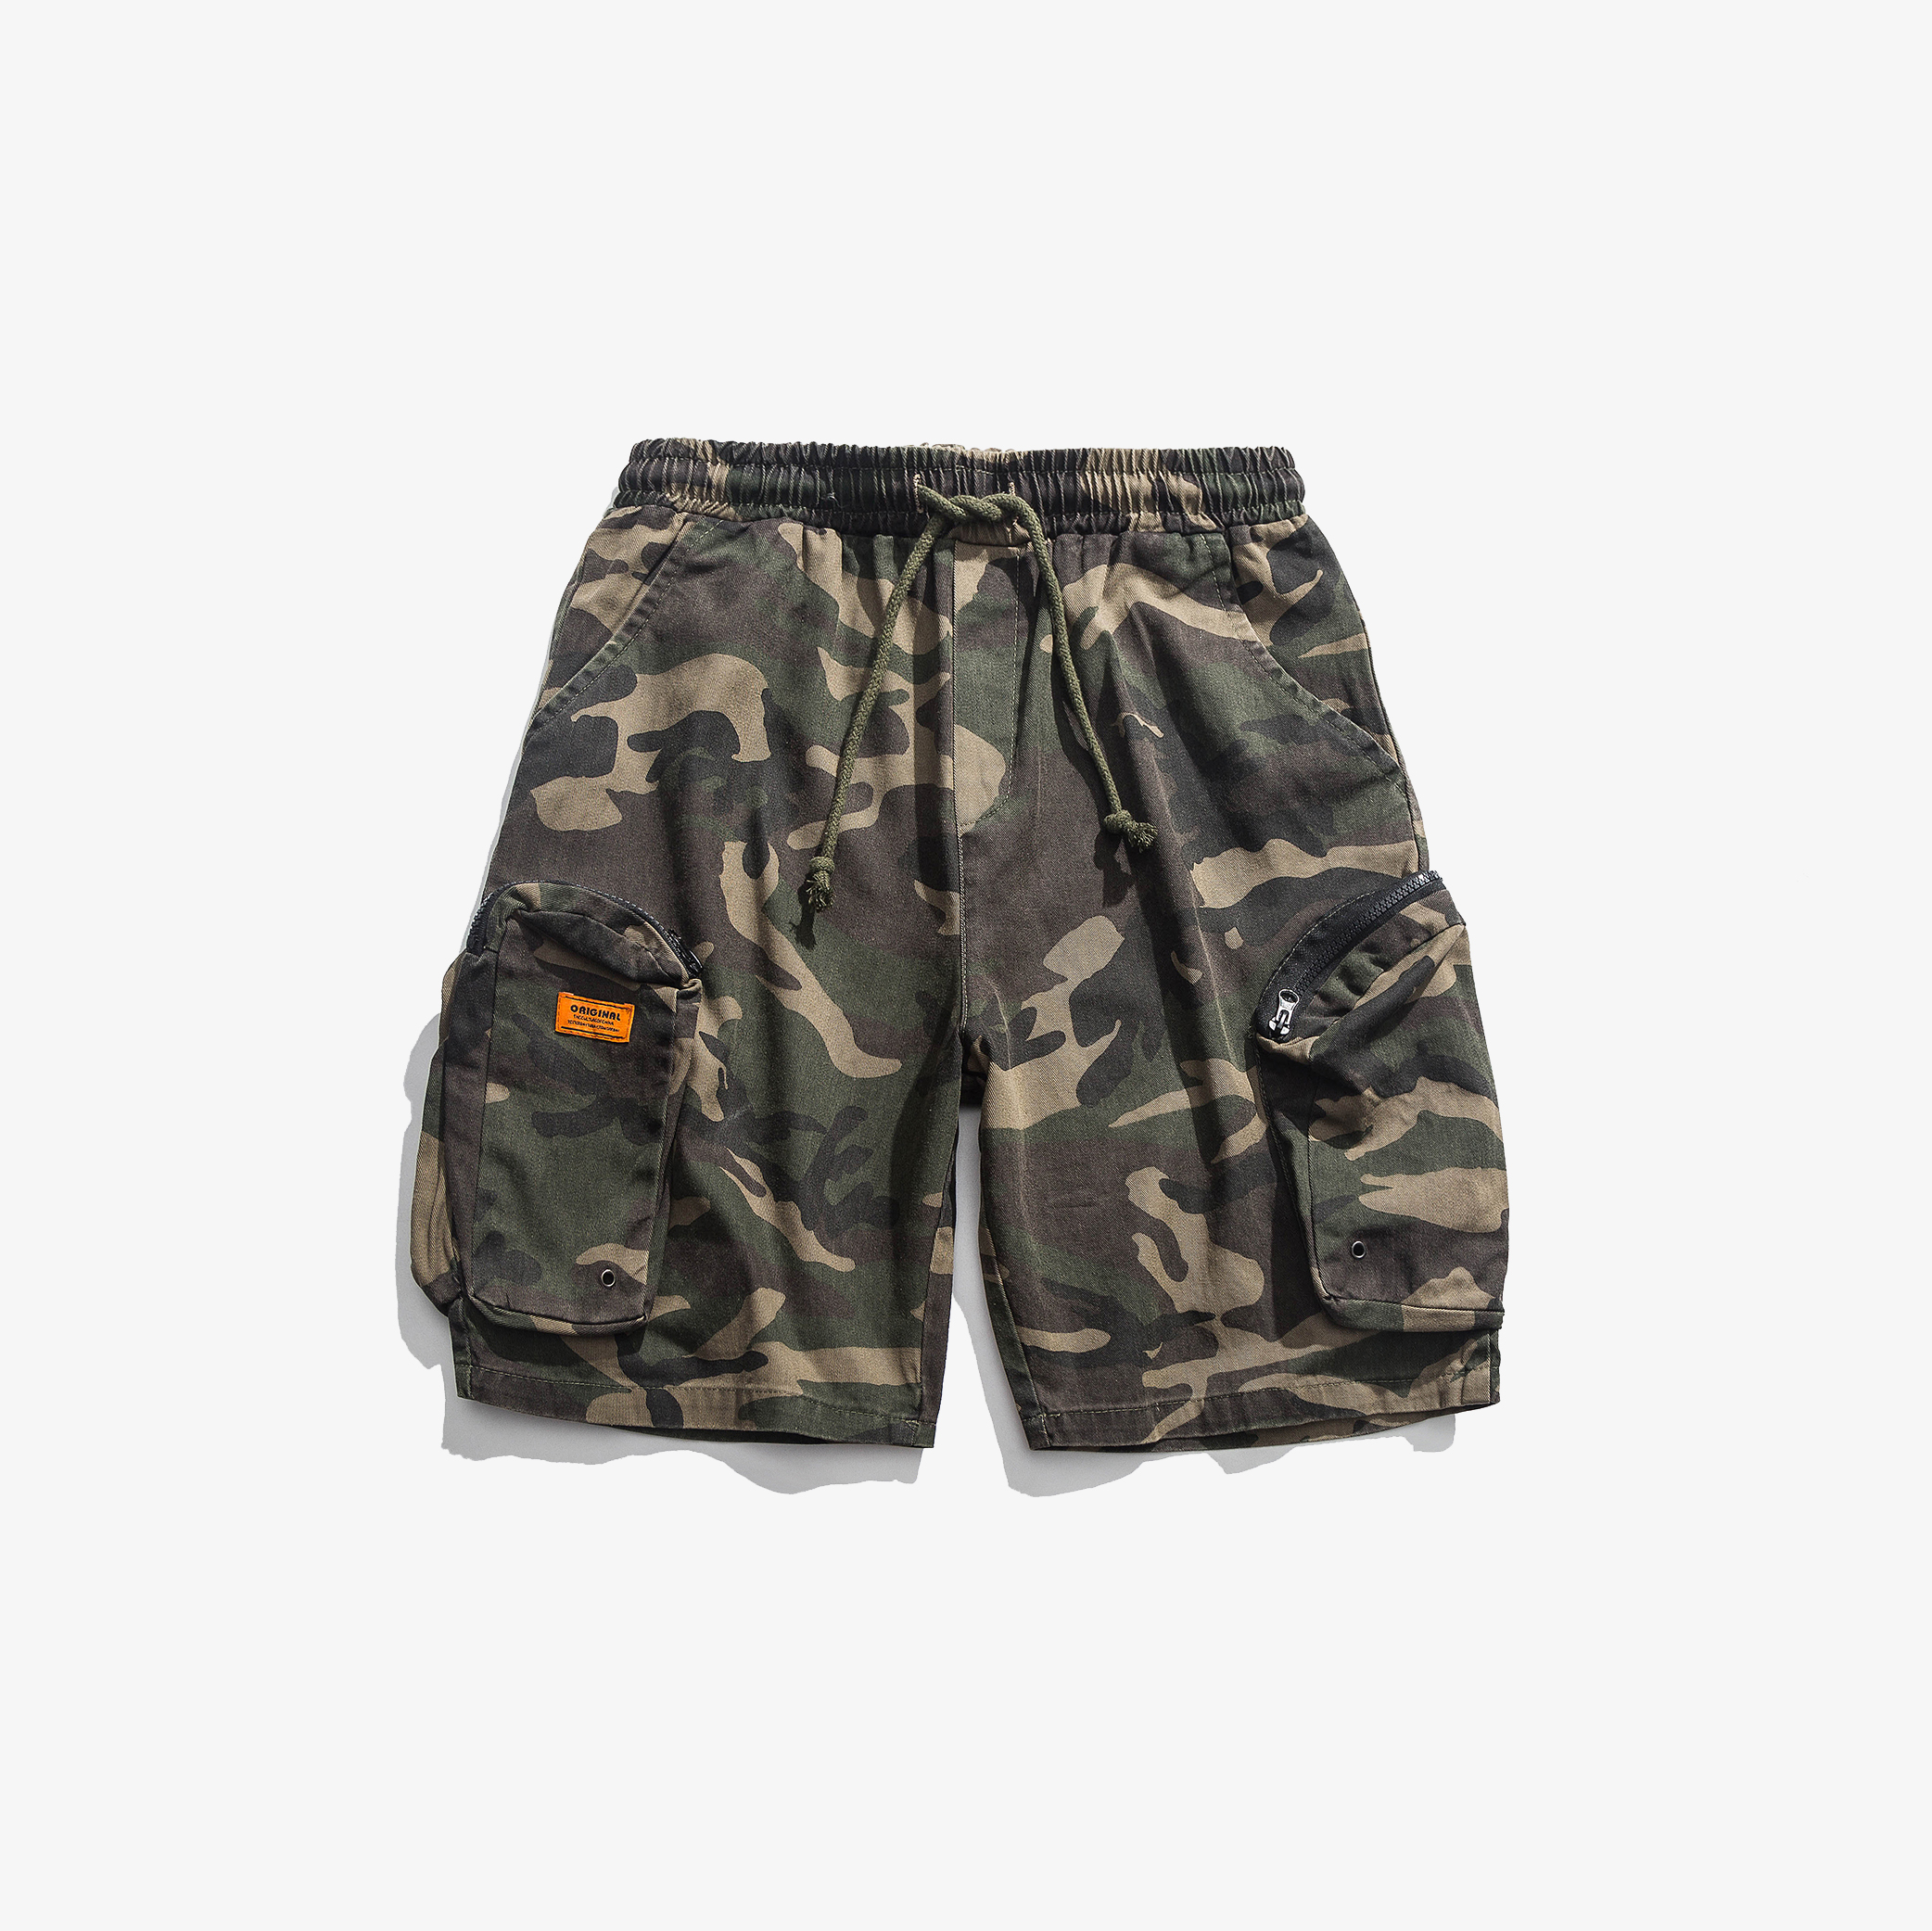 Z30-p50 camouflage overalls mens shorts functional style Multi Pocket mens Pants Capris